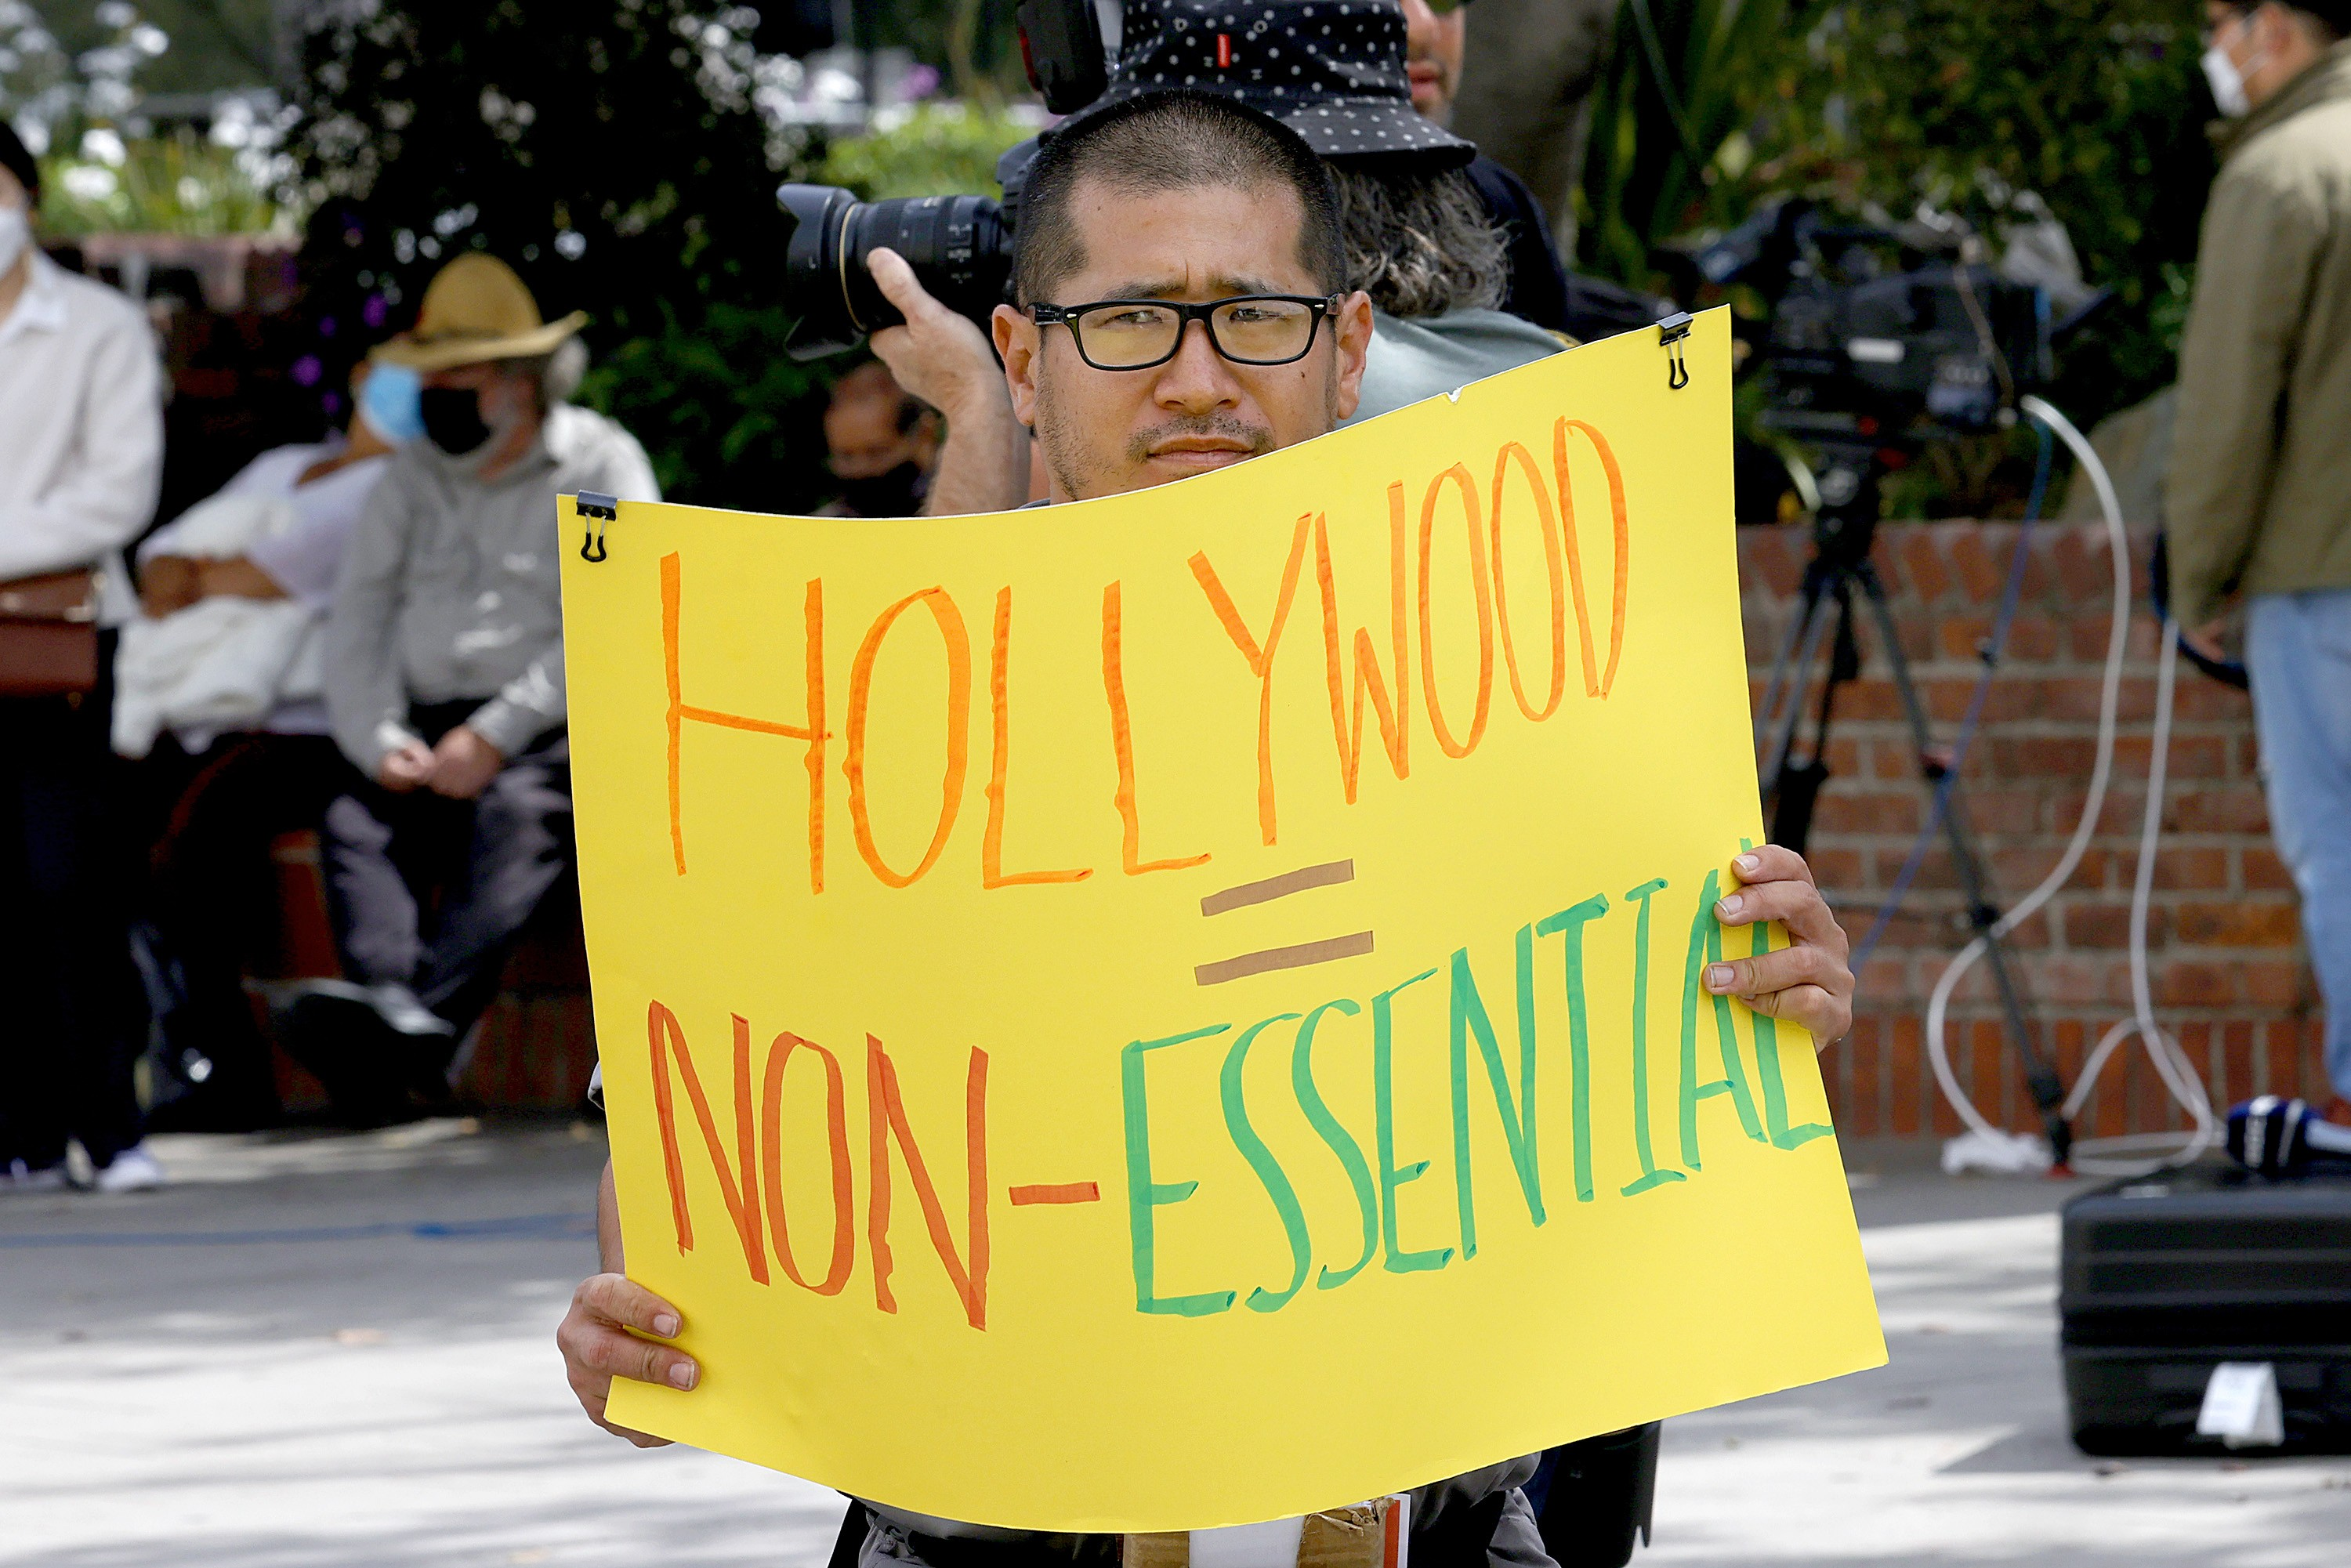 LOS ANGELES, CALIFORNIA - APRIL 25: Fans and protestors are seen outside the Union Station ceremony during the 93rd Annual Academy Awards on April 25, 2021 in Los Angeles, California. (Photo by Frazer Harrison/Getty Images) (Foto: Getty Images)